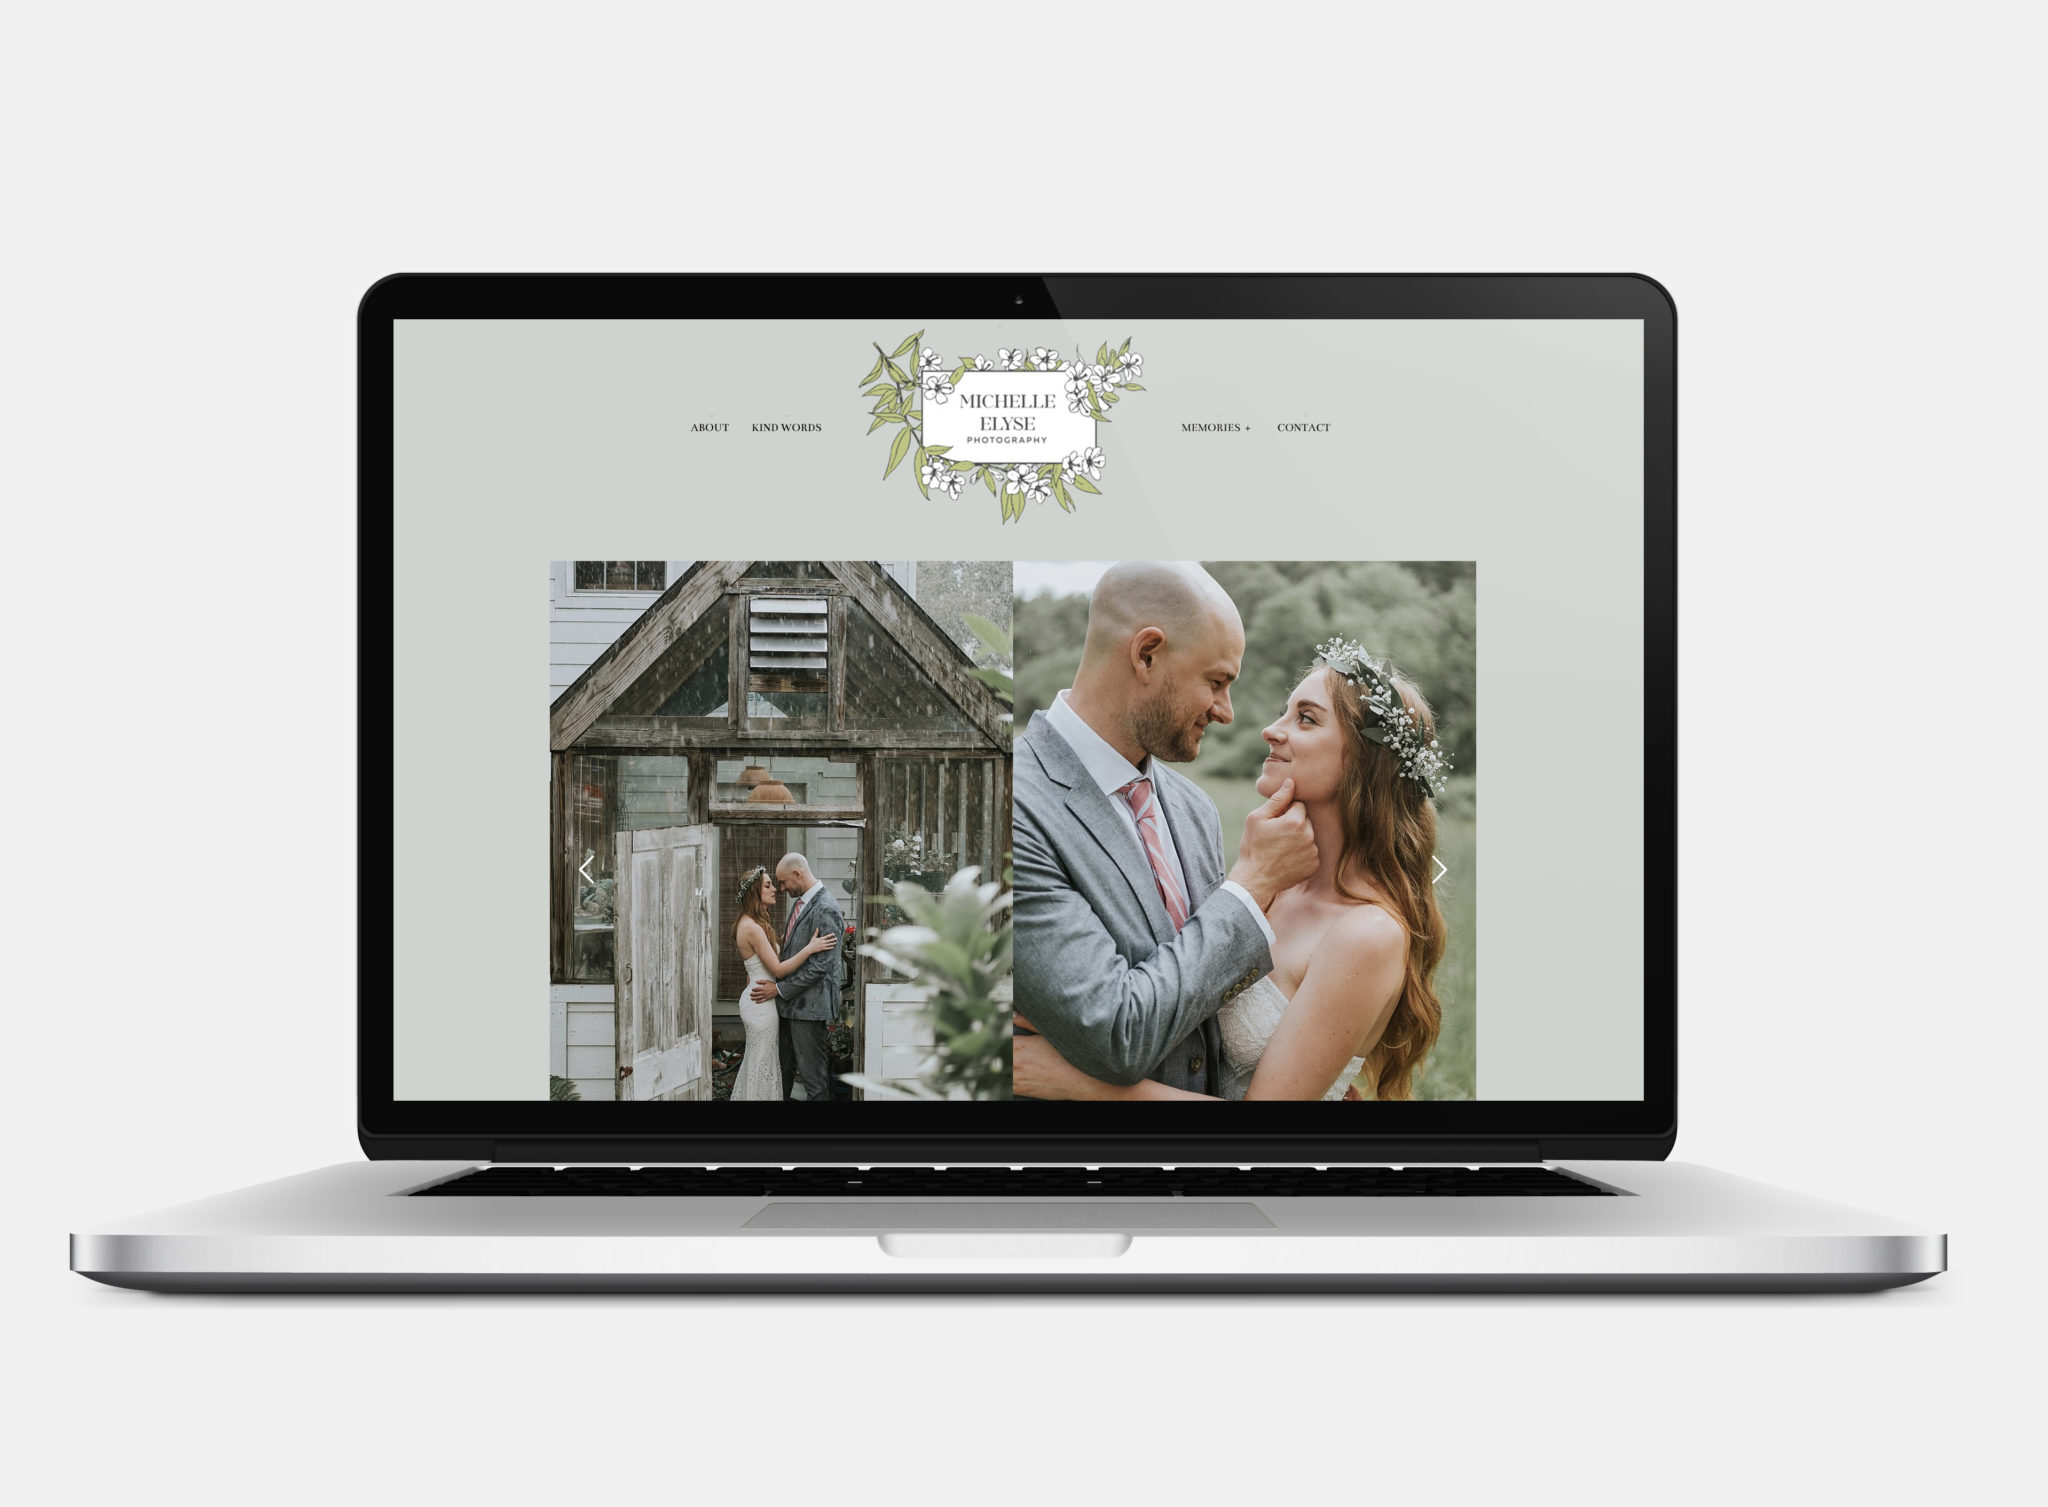 Web Design for Photography Business